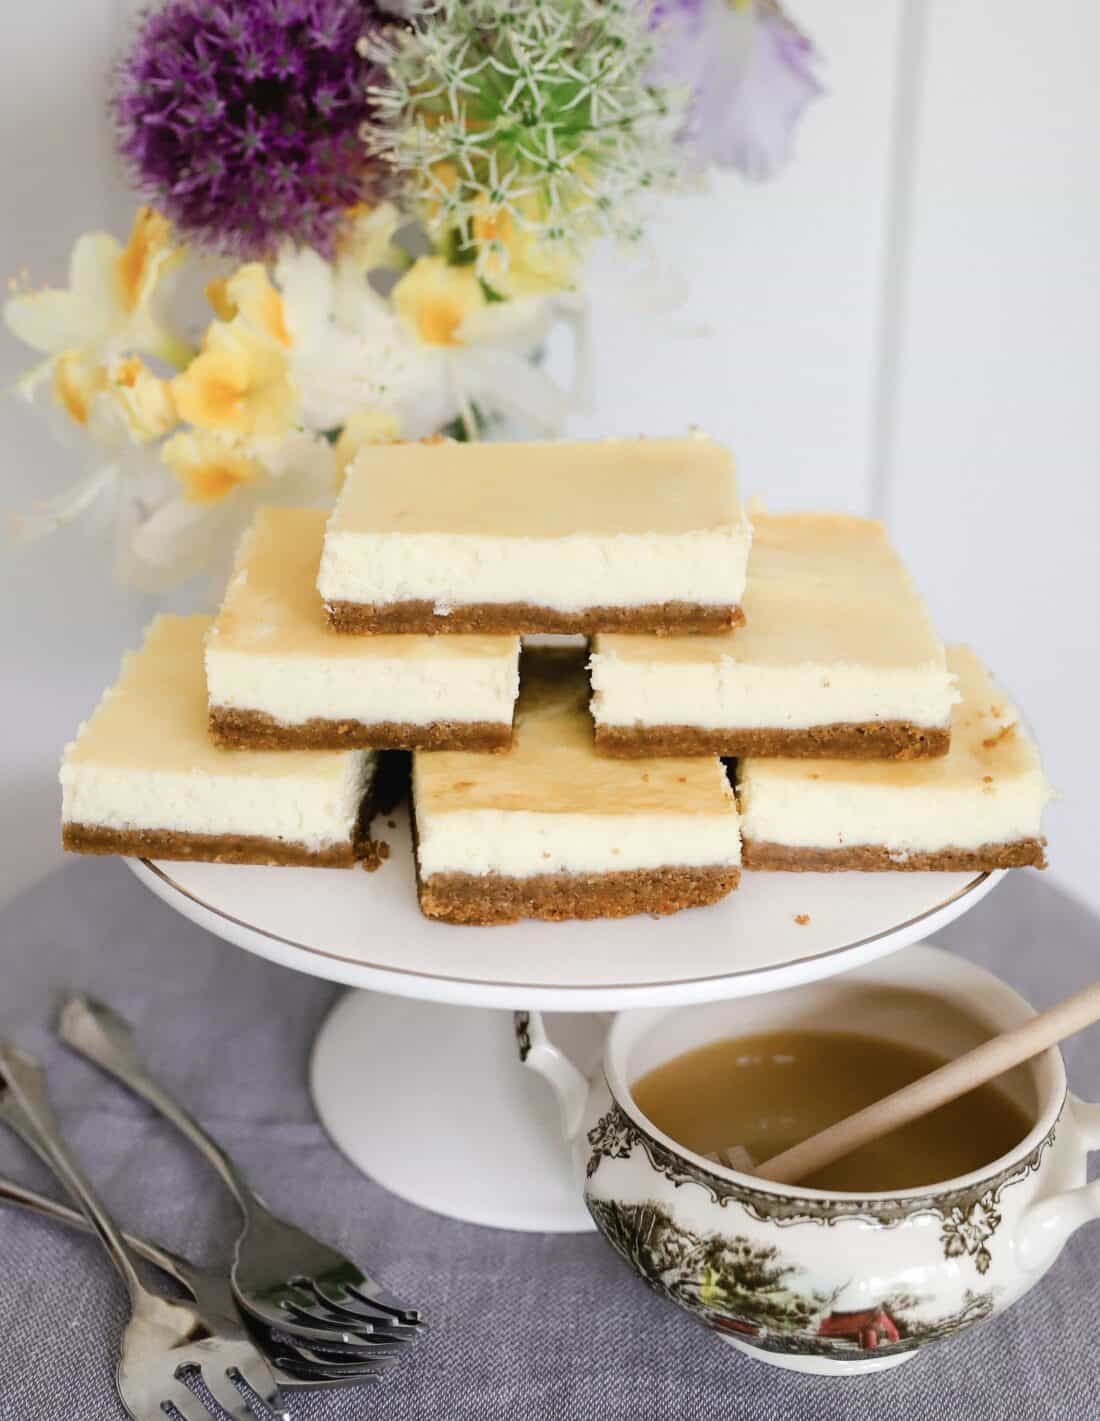 cheesecake cut into squares on a white platter